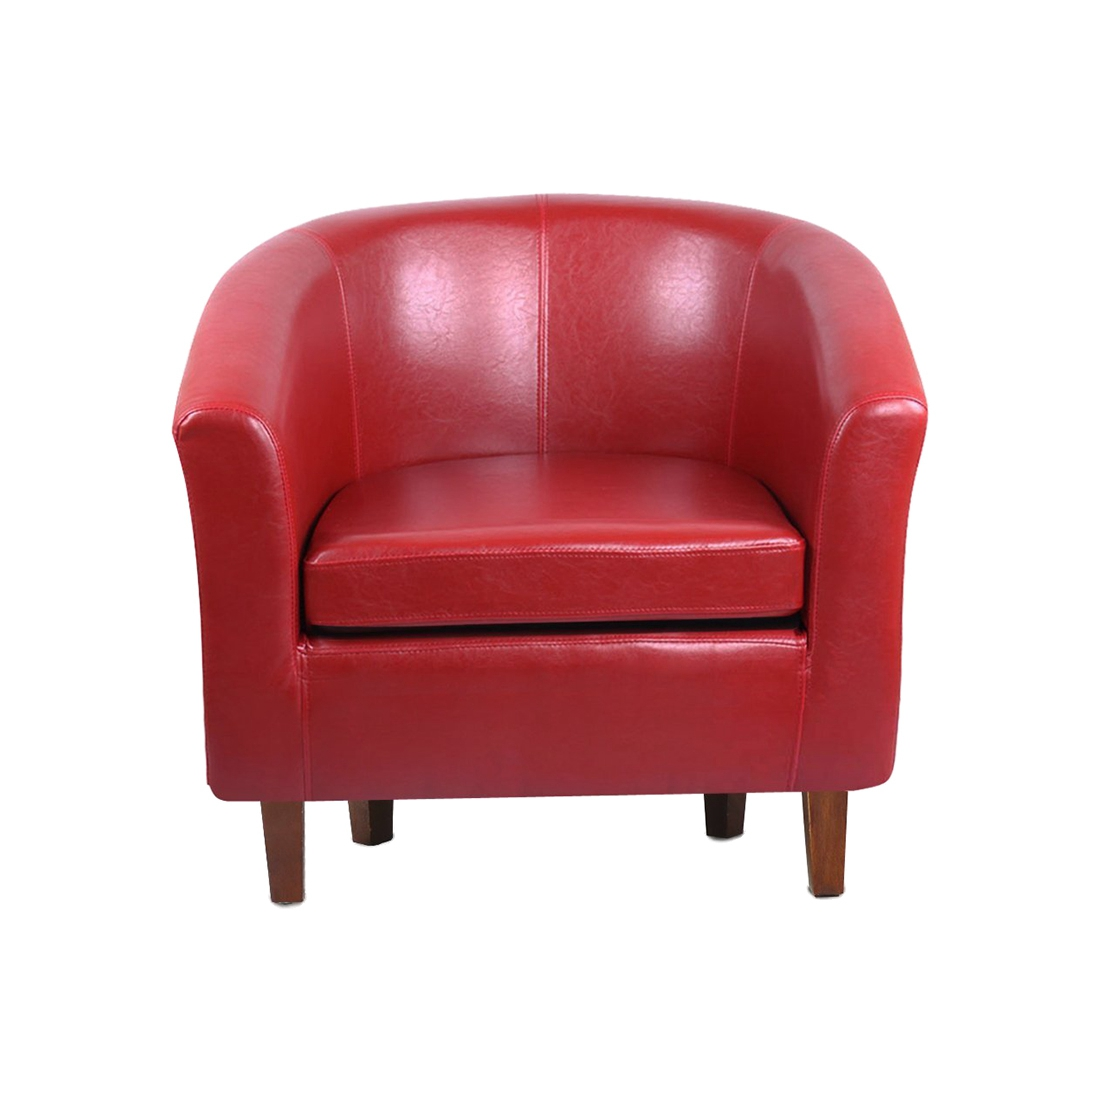 Best Leather Tub Chair Armchair For Dining Living Room Office Reception (Red )(China